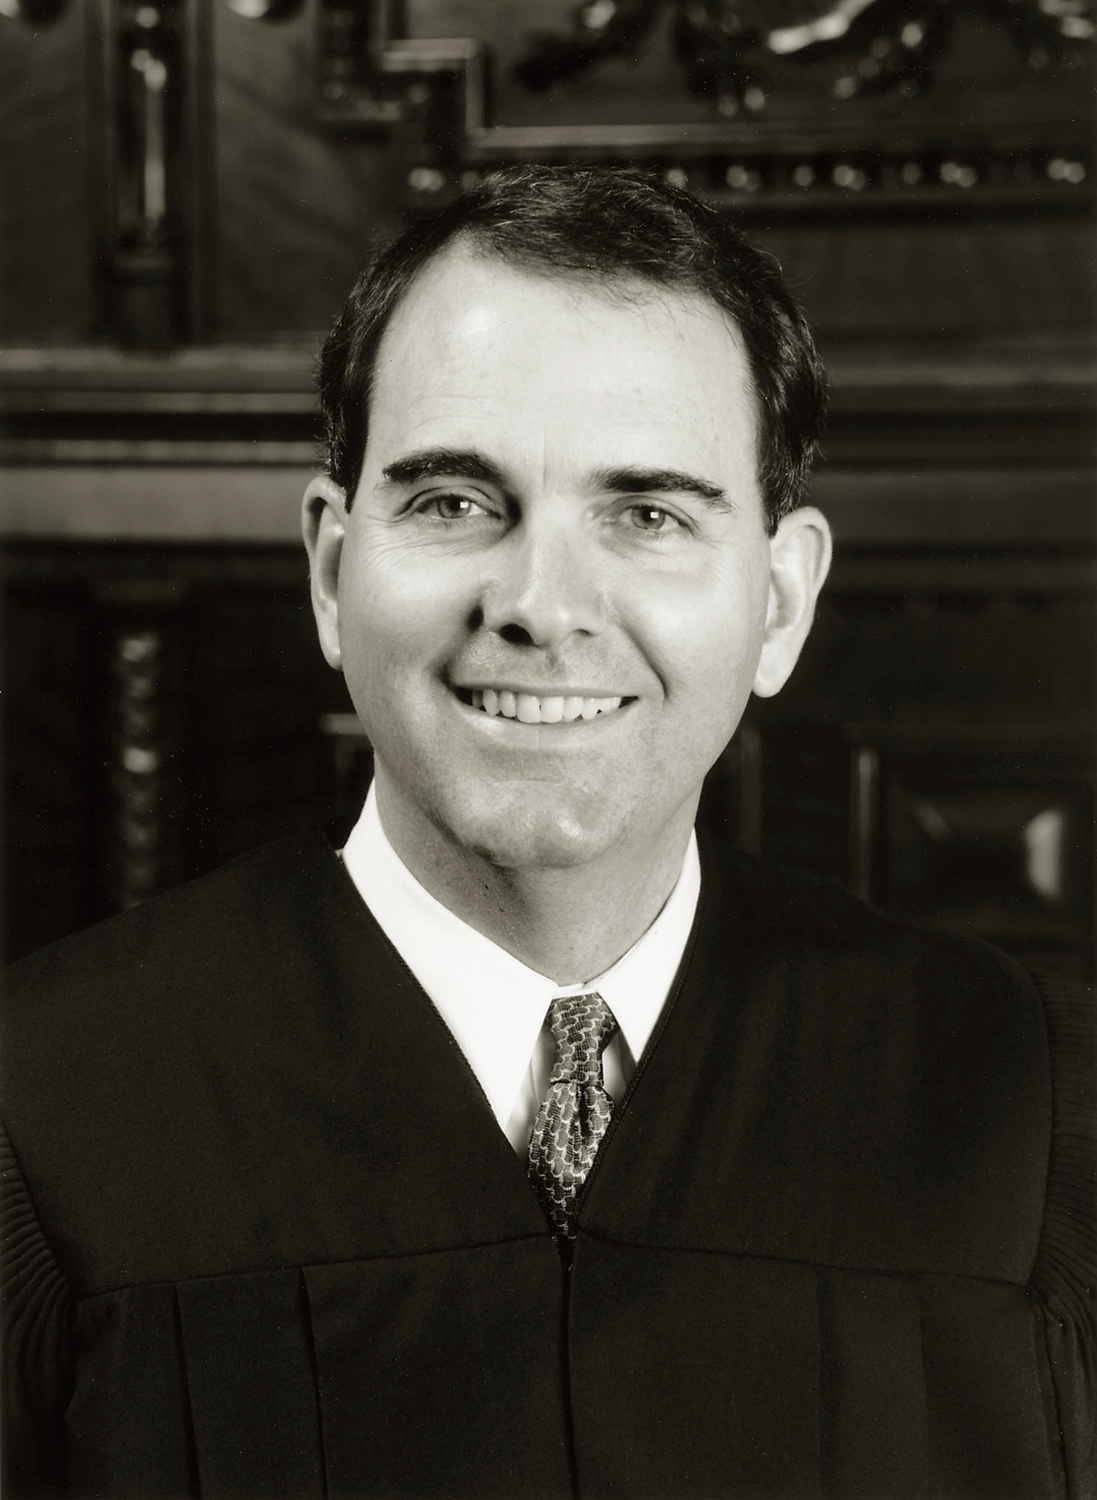 Portrait of Judge Jay S. Bybee